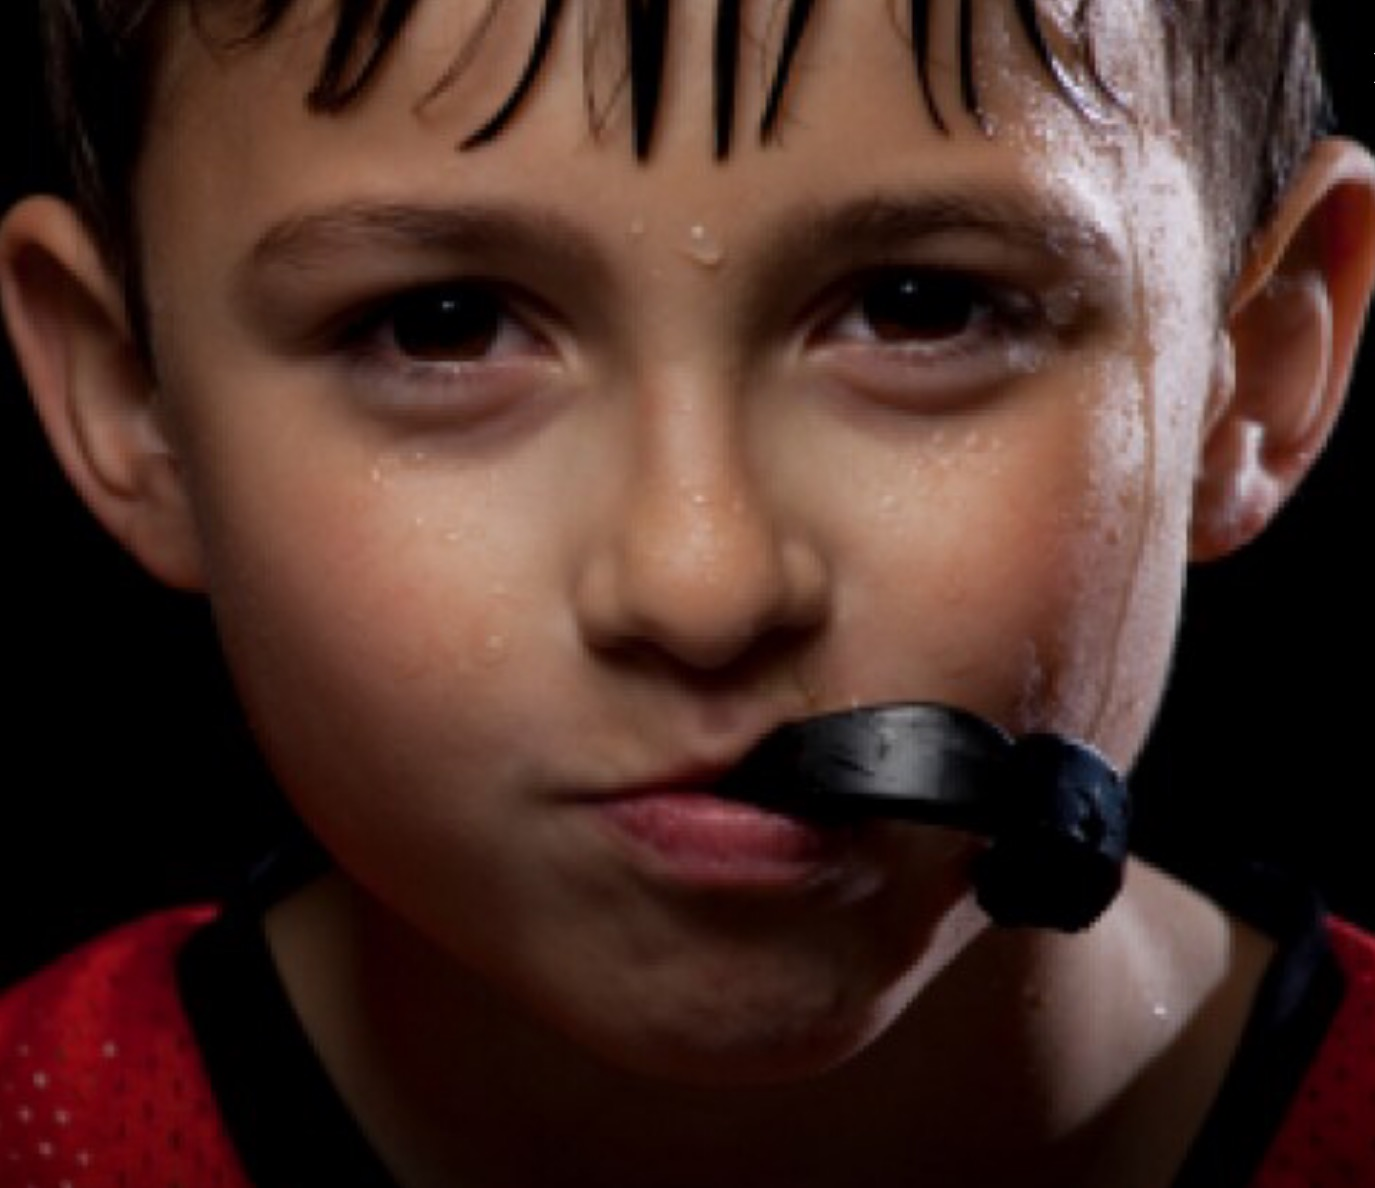 Boy using mouthguard for sport